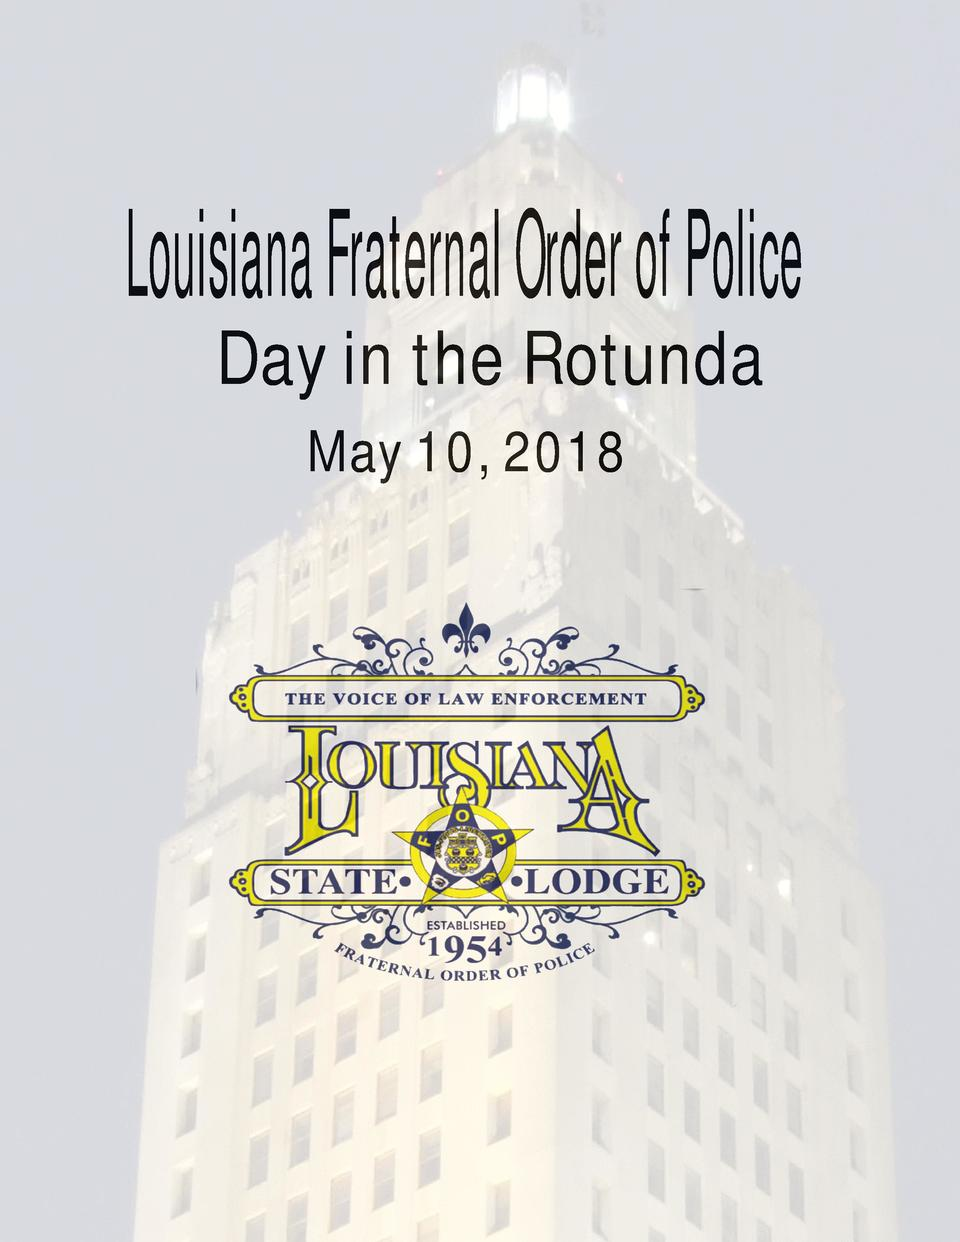 Louisiana Fraternal Order of Police Day in the Rotunda May 10, 2018